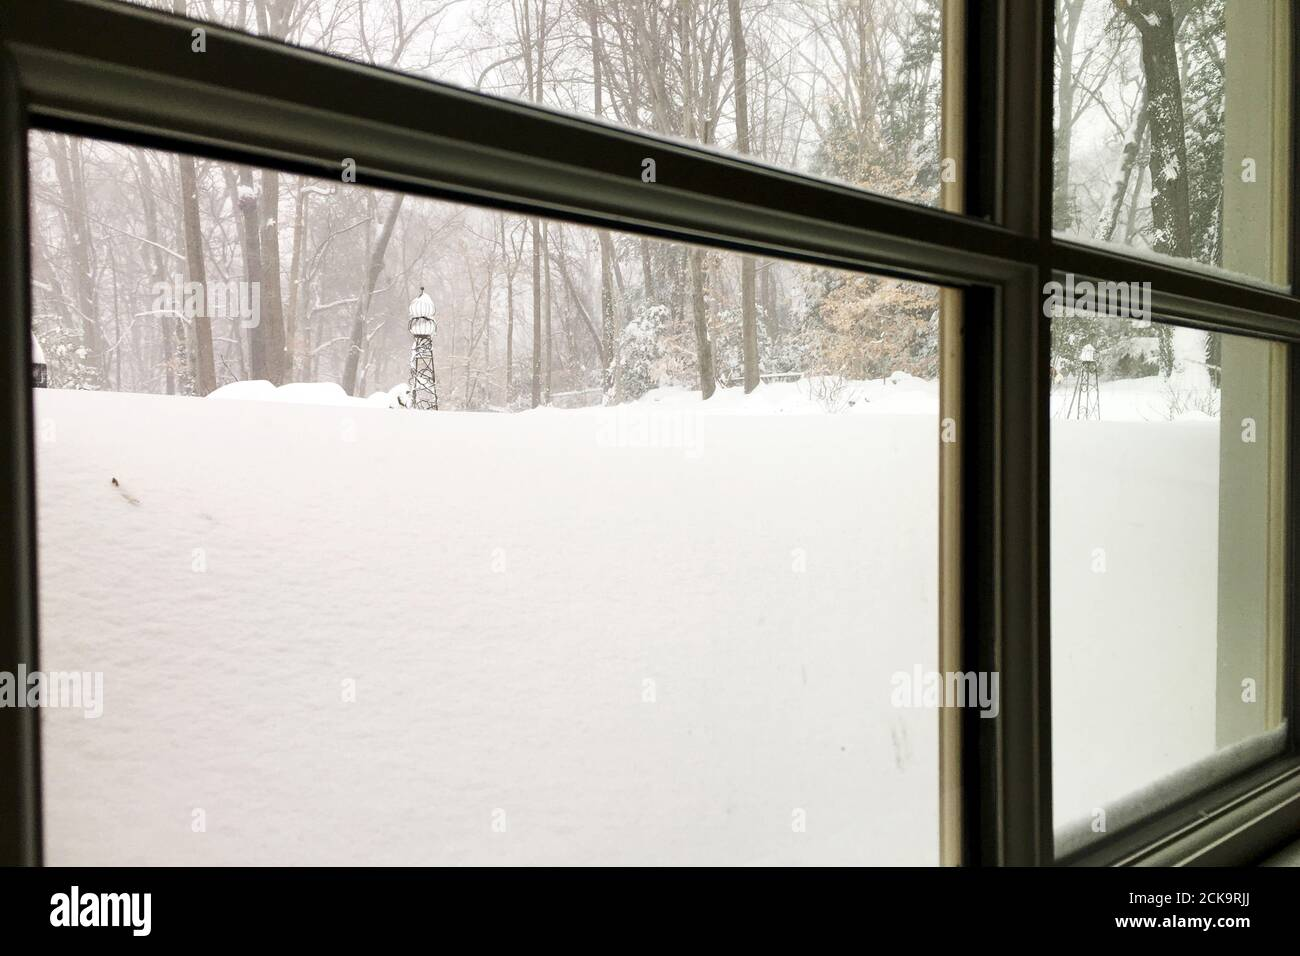 A view from a basement window shows overnight snow covering the grounds after a blustery snowstorm inside the Washington DC Beltway in Annandale, Virginia, January 23, 2016. Thick snow covered the Washington D.C. area on Saturday as a potentially record-breaking blizzard paralyzed road, rail and airline travel on the U.S. East Coast from North Carolina to New York.  REUTERS/Hyungwon Kang Stock Photo